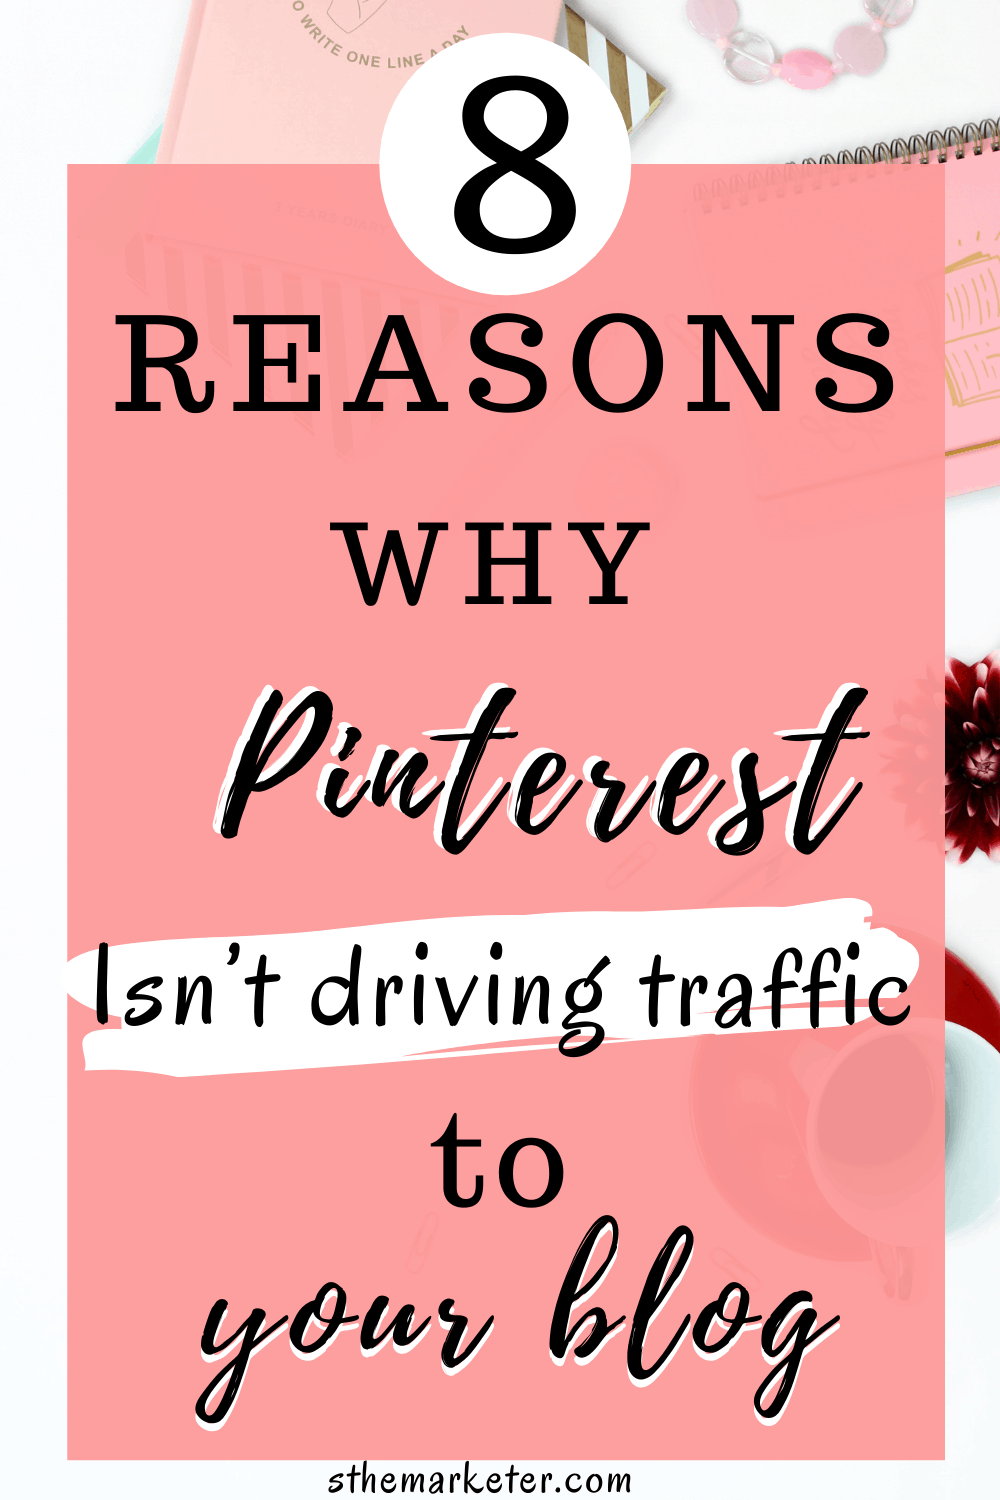 8 Reasons Why Pinterest isn't Driving Traffic to your Blog